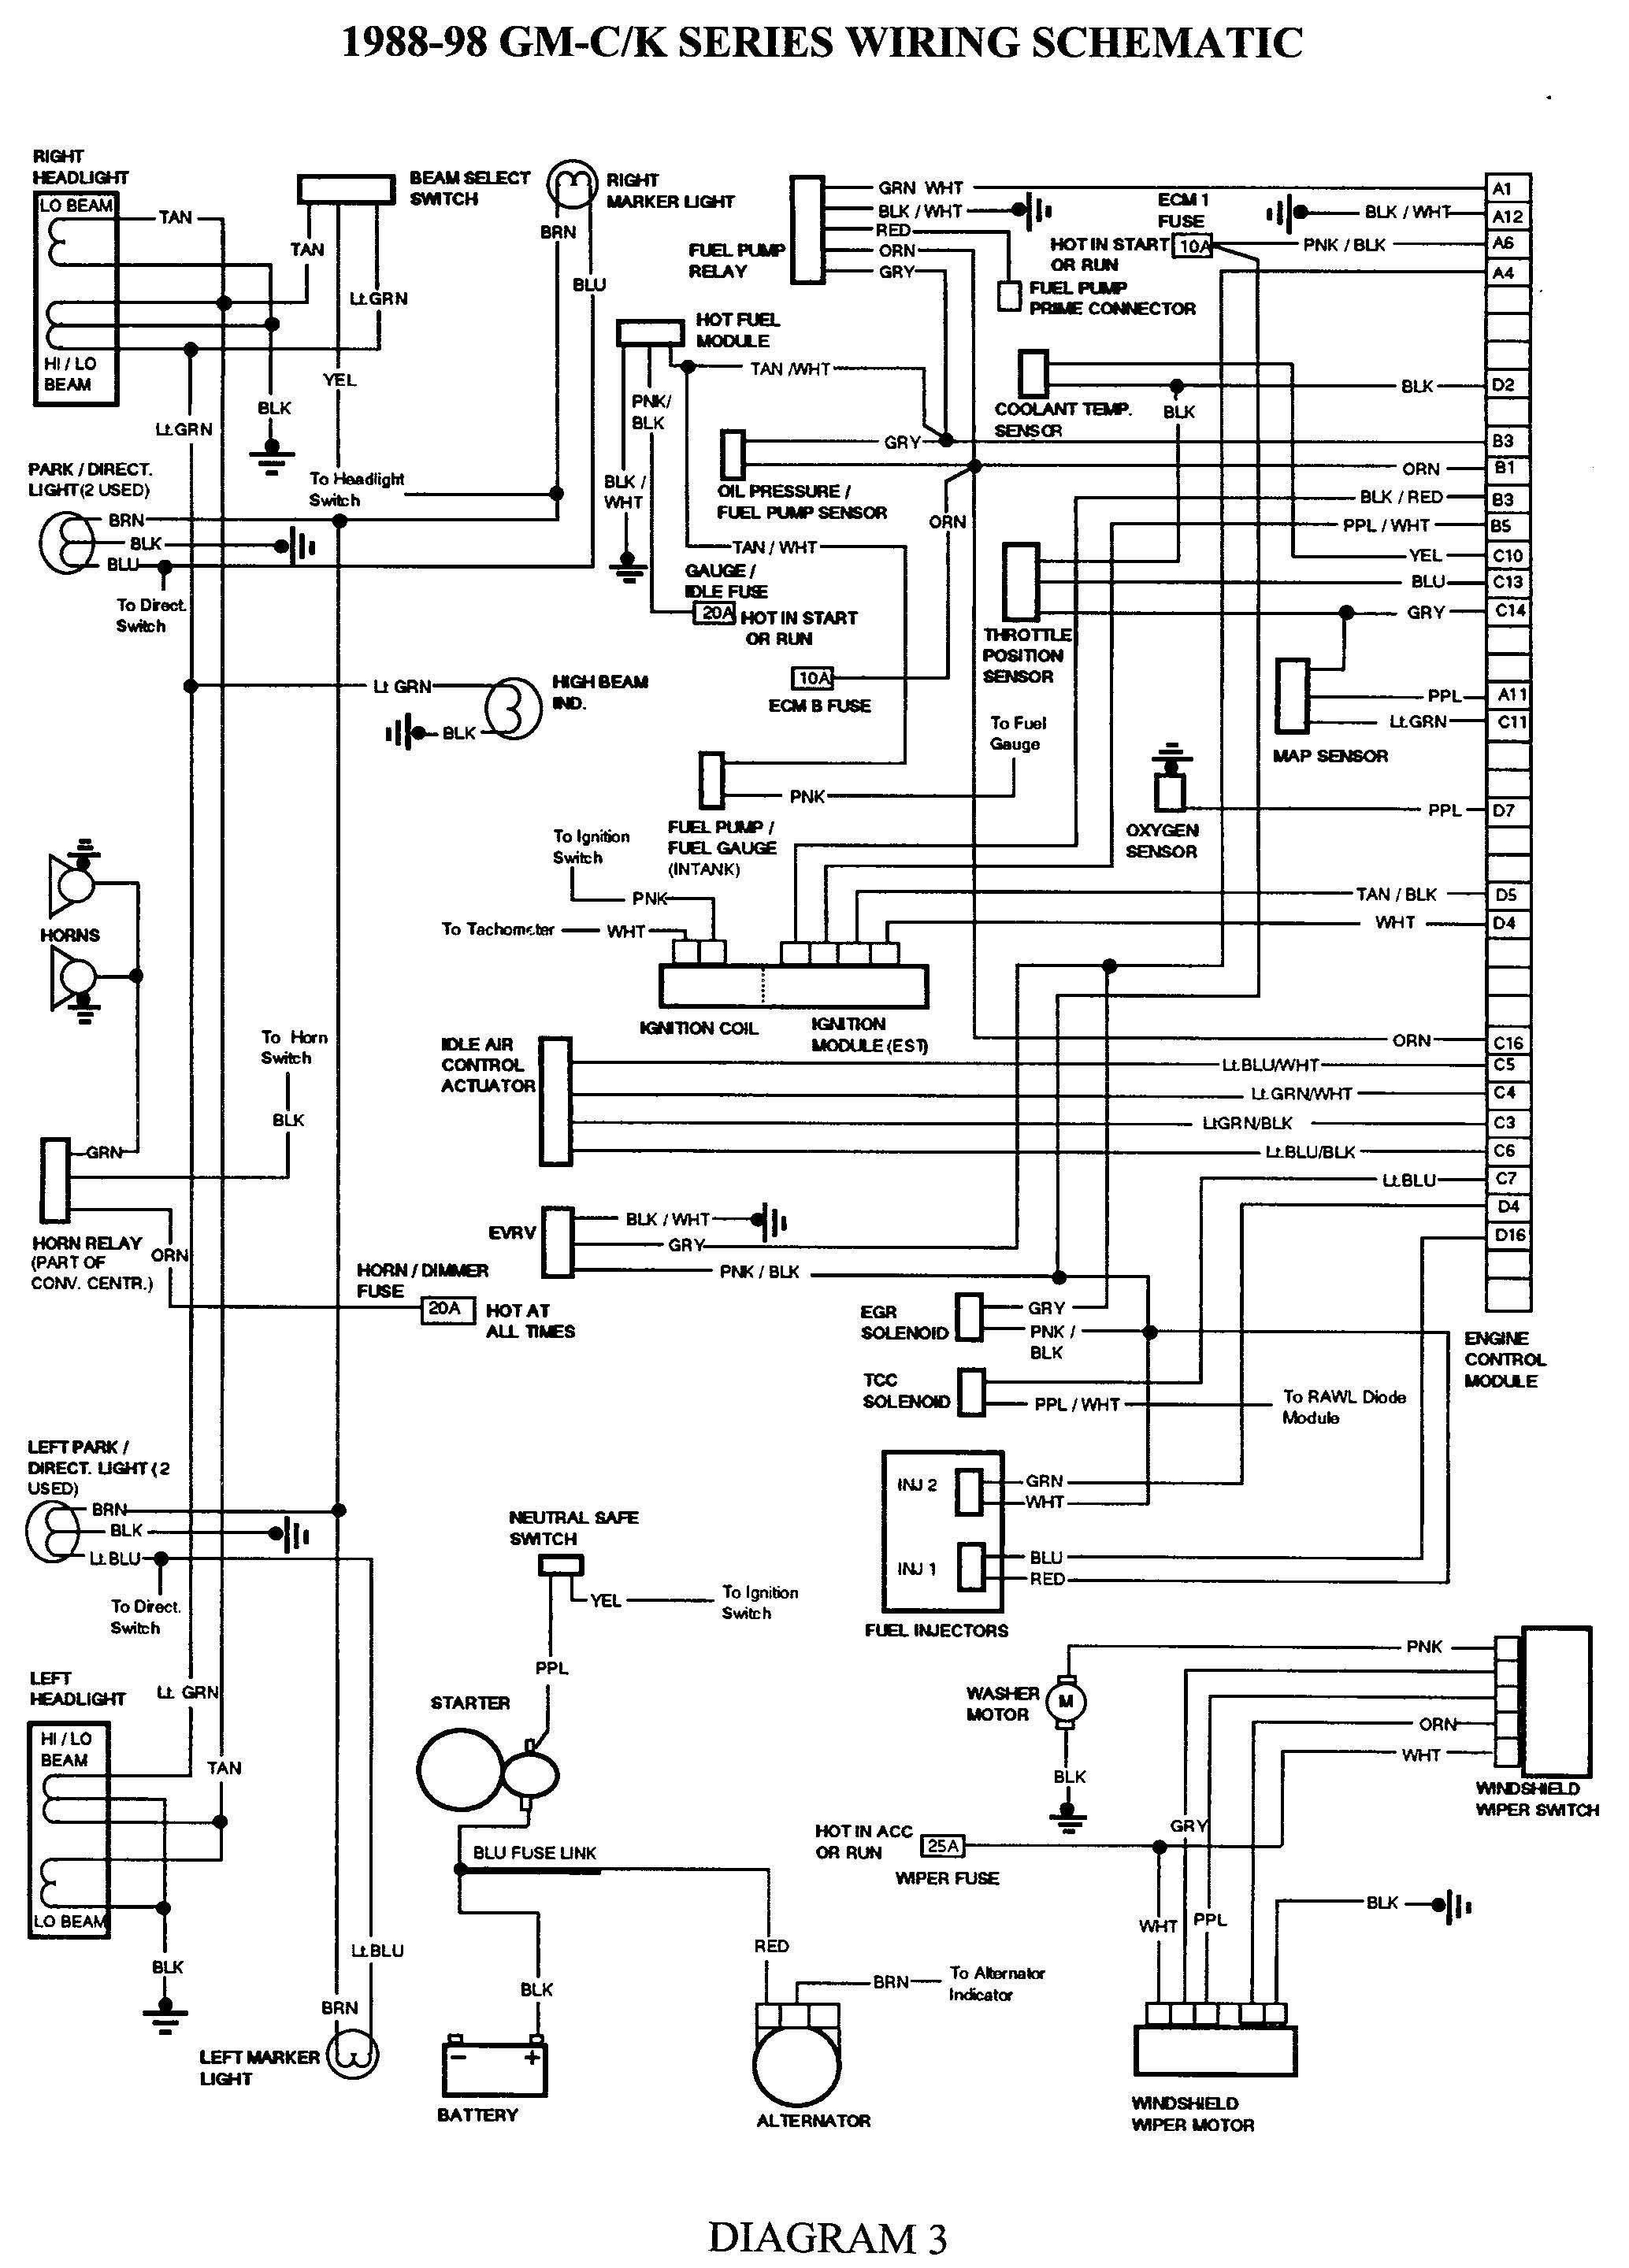 2000 Chevy S10 Wiring Diagram 1998 Chevy K3500 Wiring Diagram Wiring Diagram Of 2000 Chevy S10 Wiring Diagram